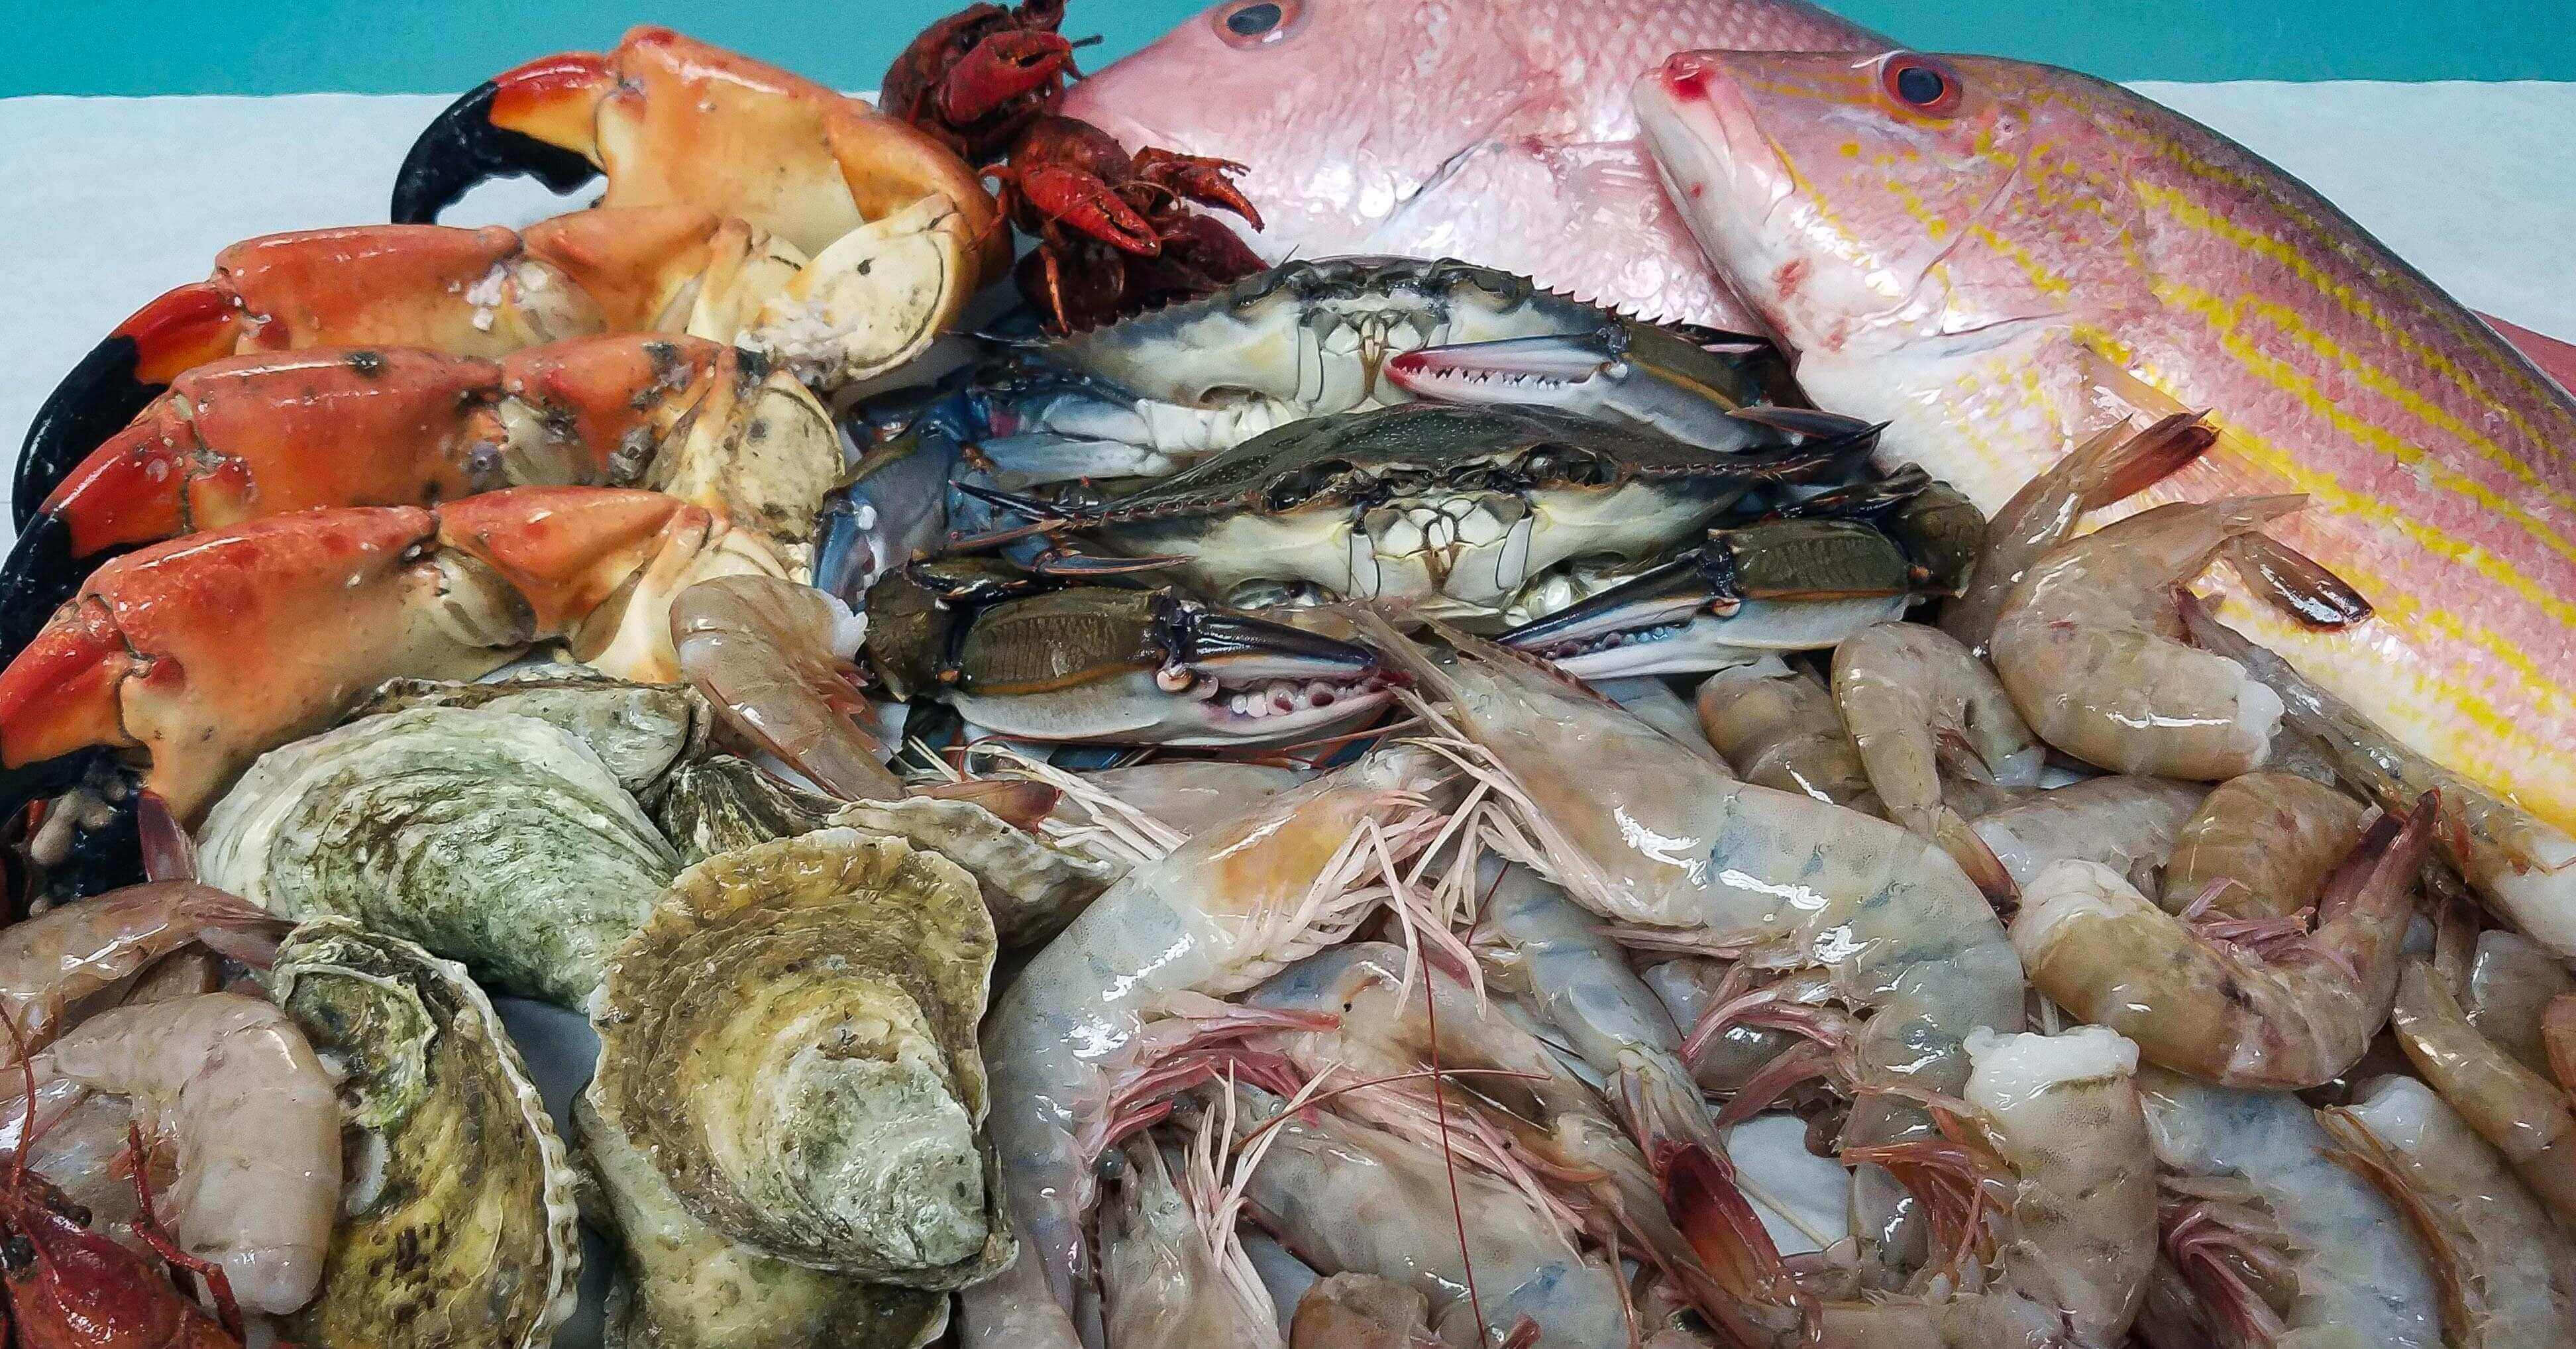 Southern Seafood Market - Fresh Fish - Shrimp - Crabs